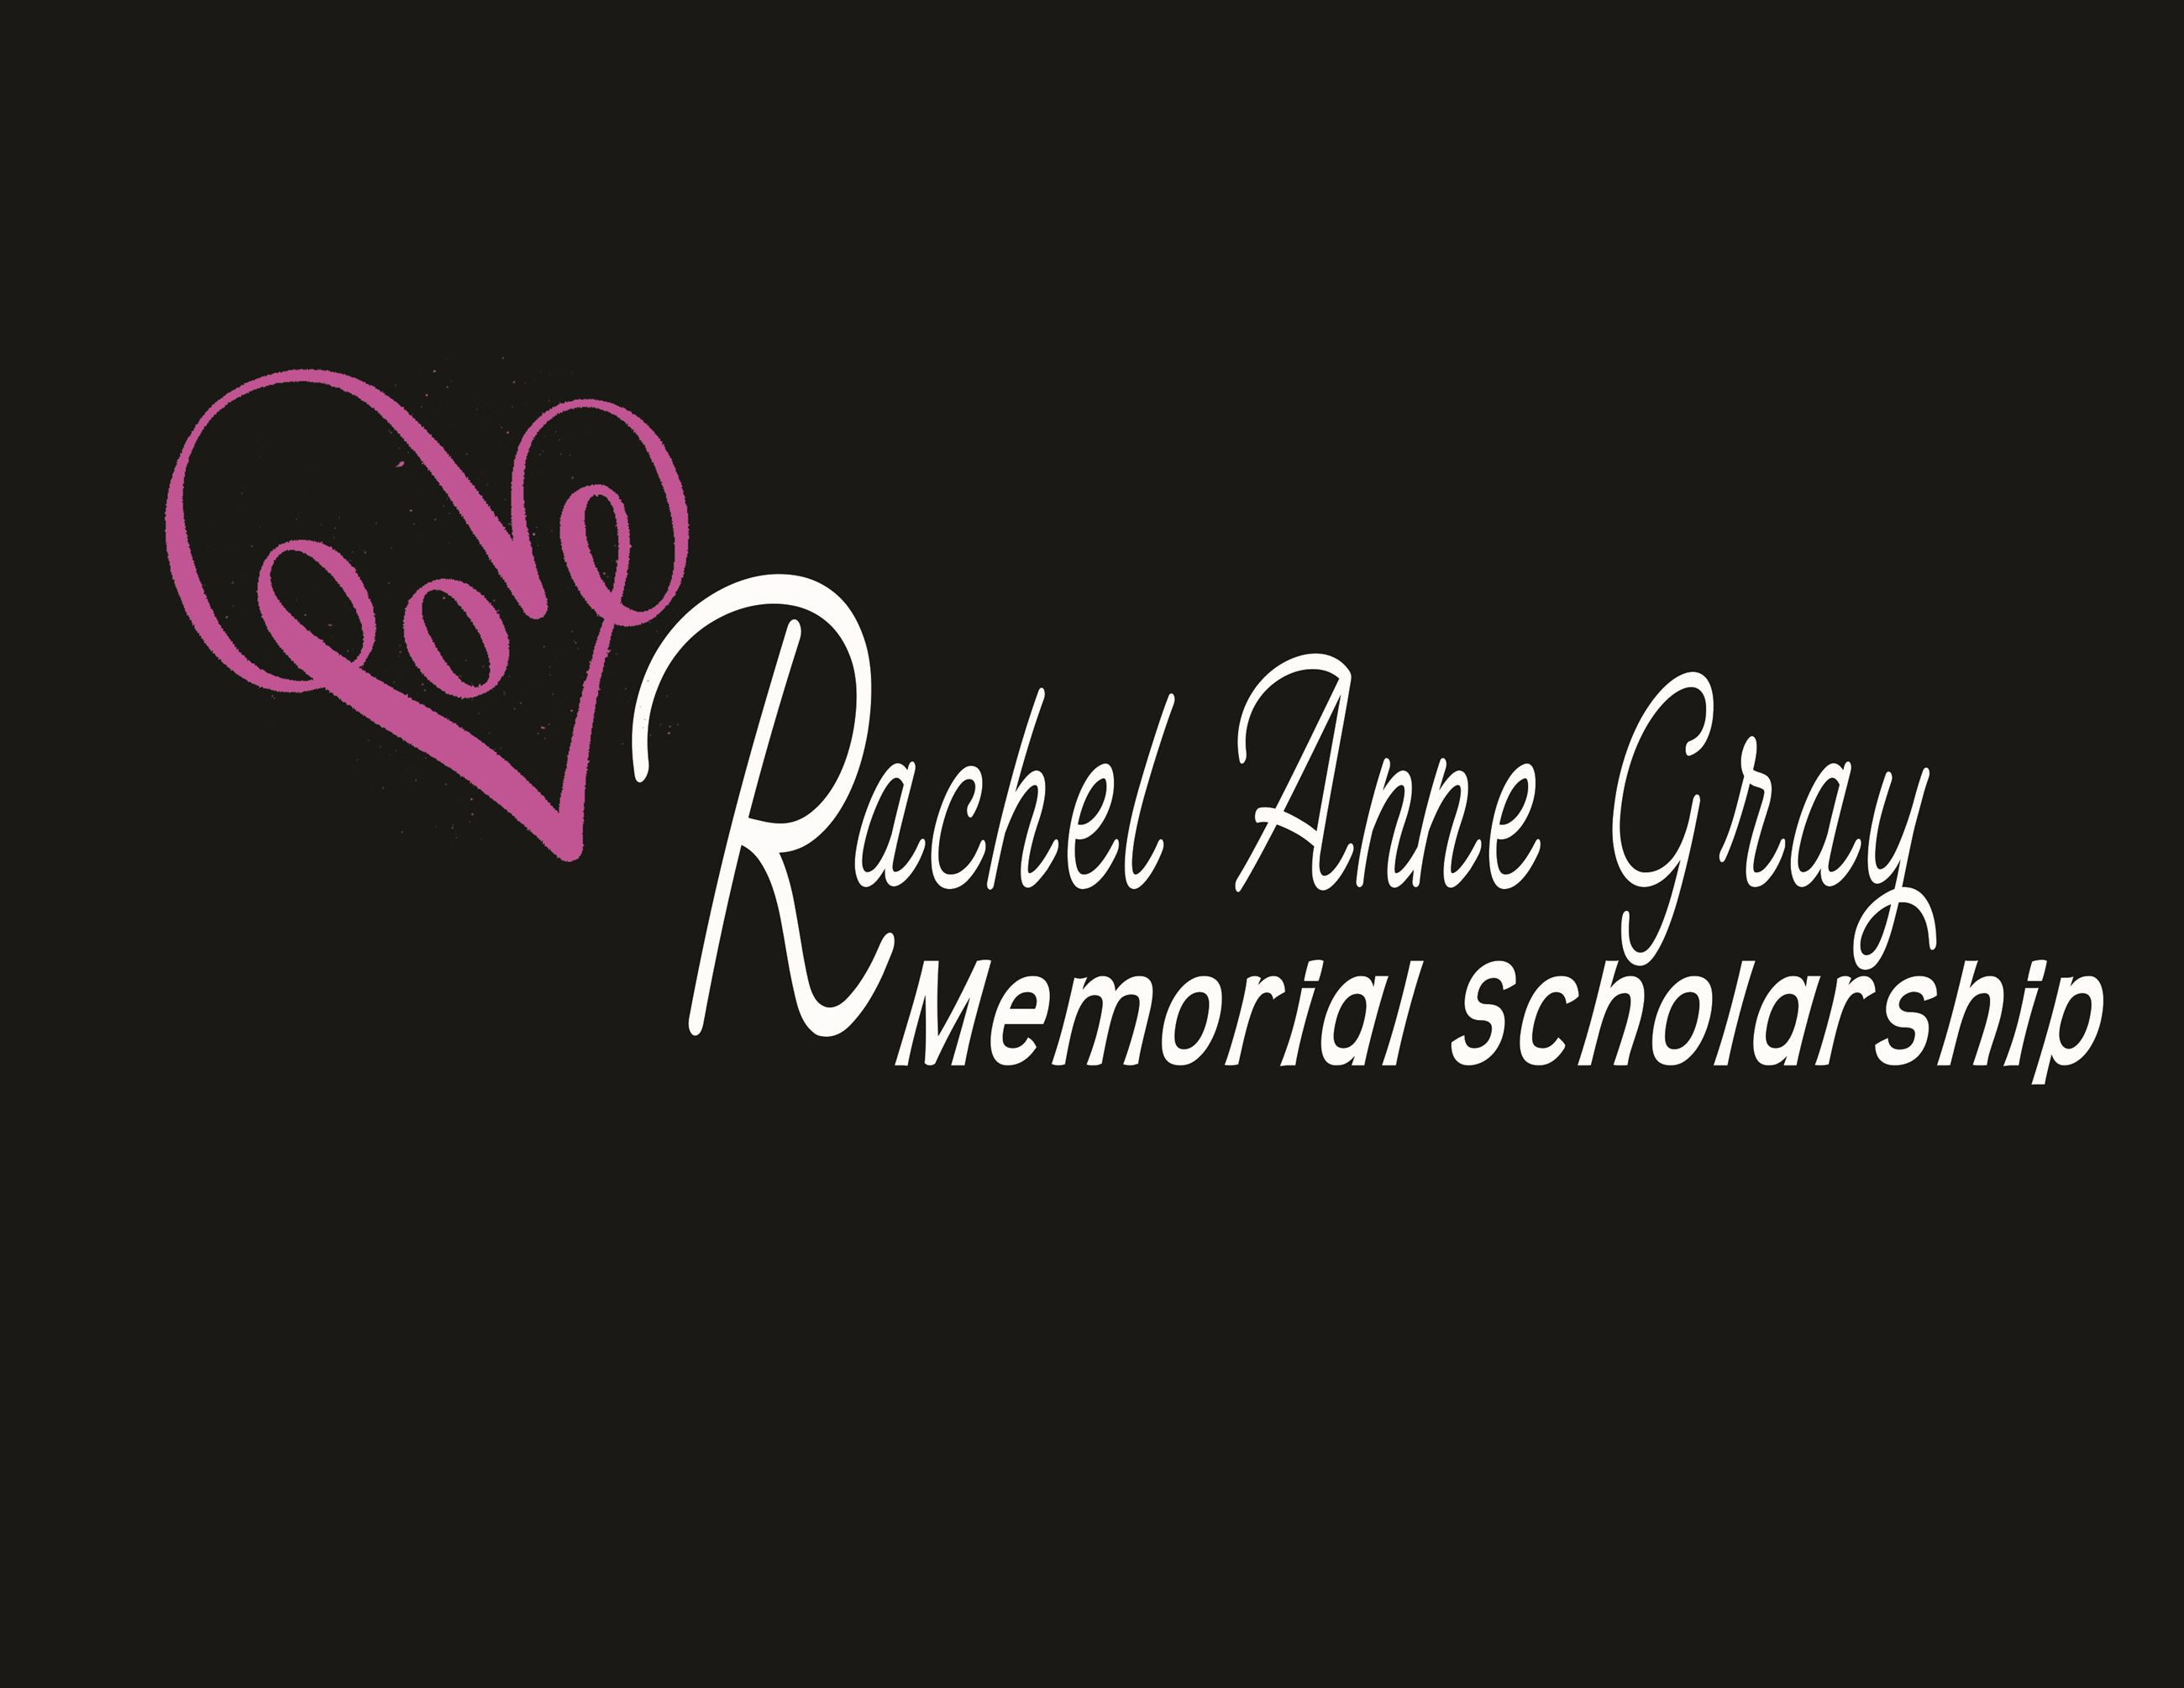 Donate to the Rachel Anne Gray Memorial Scholarship